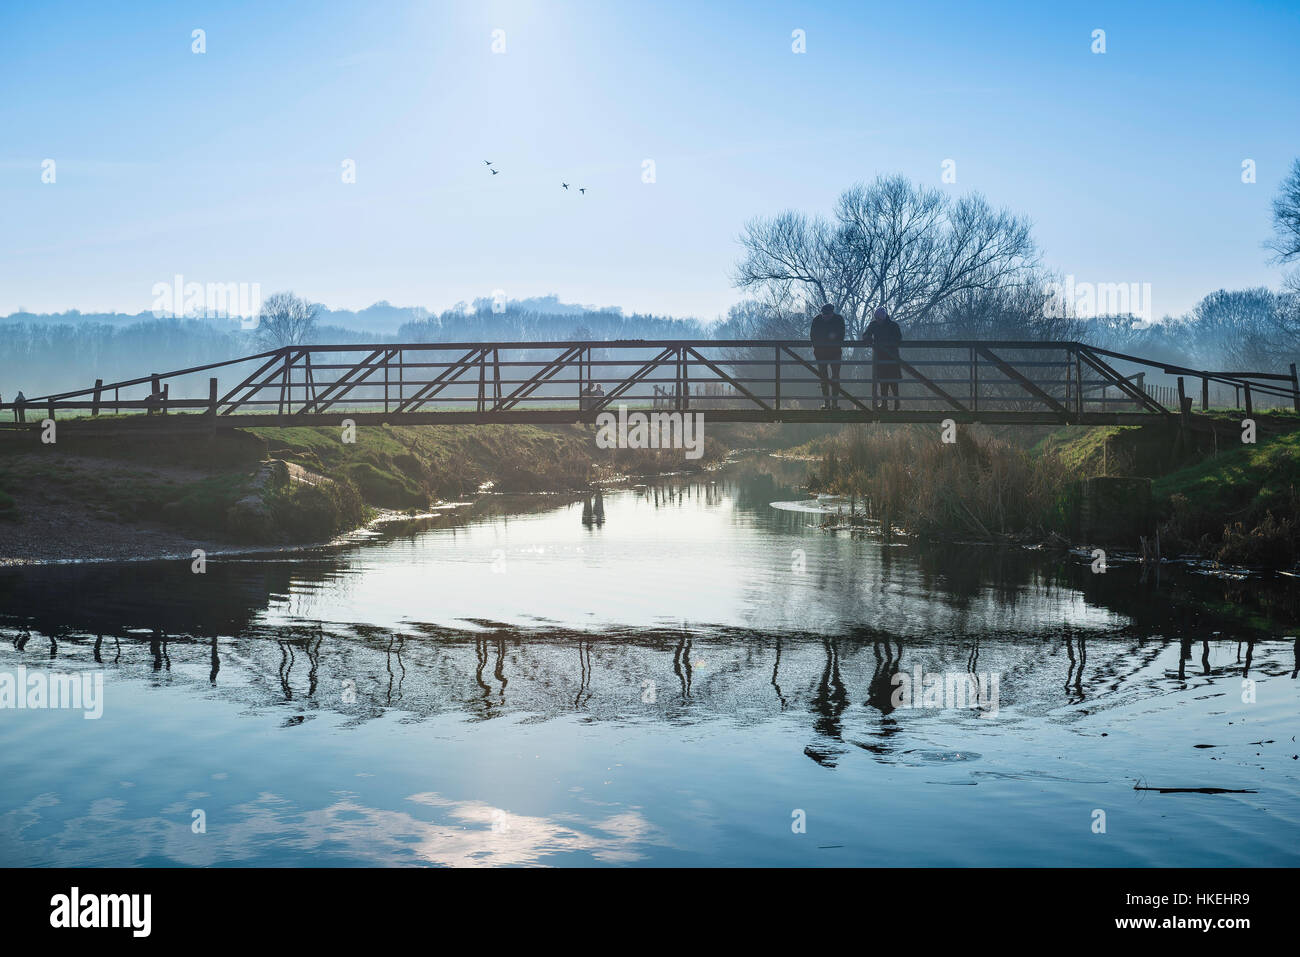 Suffolk landscape, in winter a middle aged couple pause on a bridge to look at the River Stour in a water meadow - Stock Image